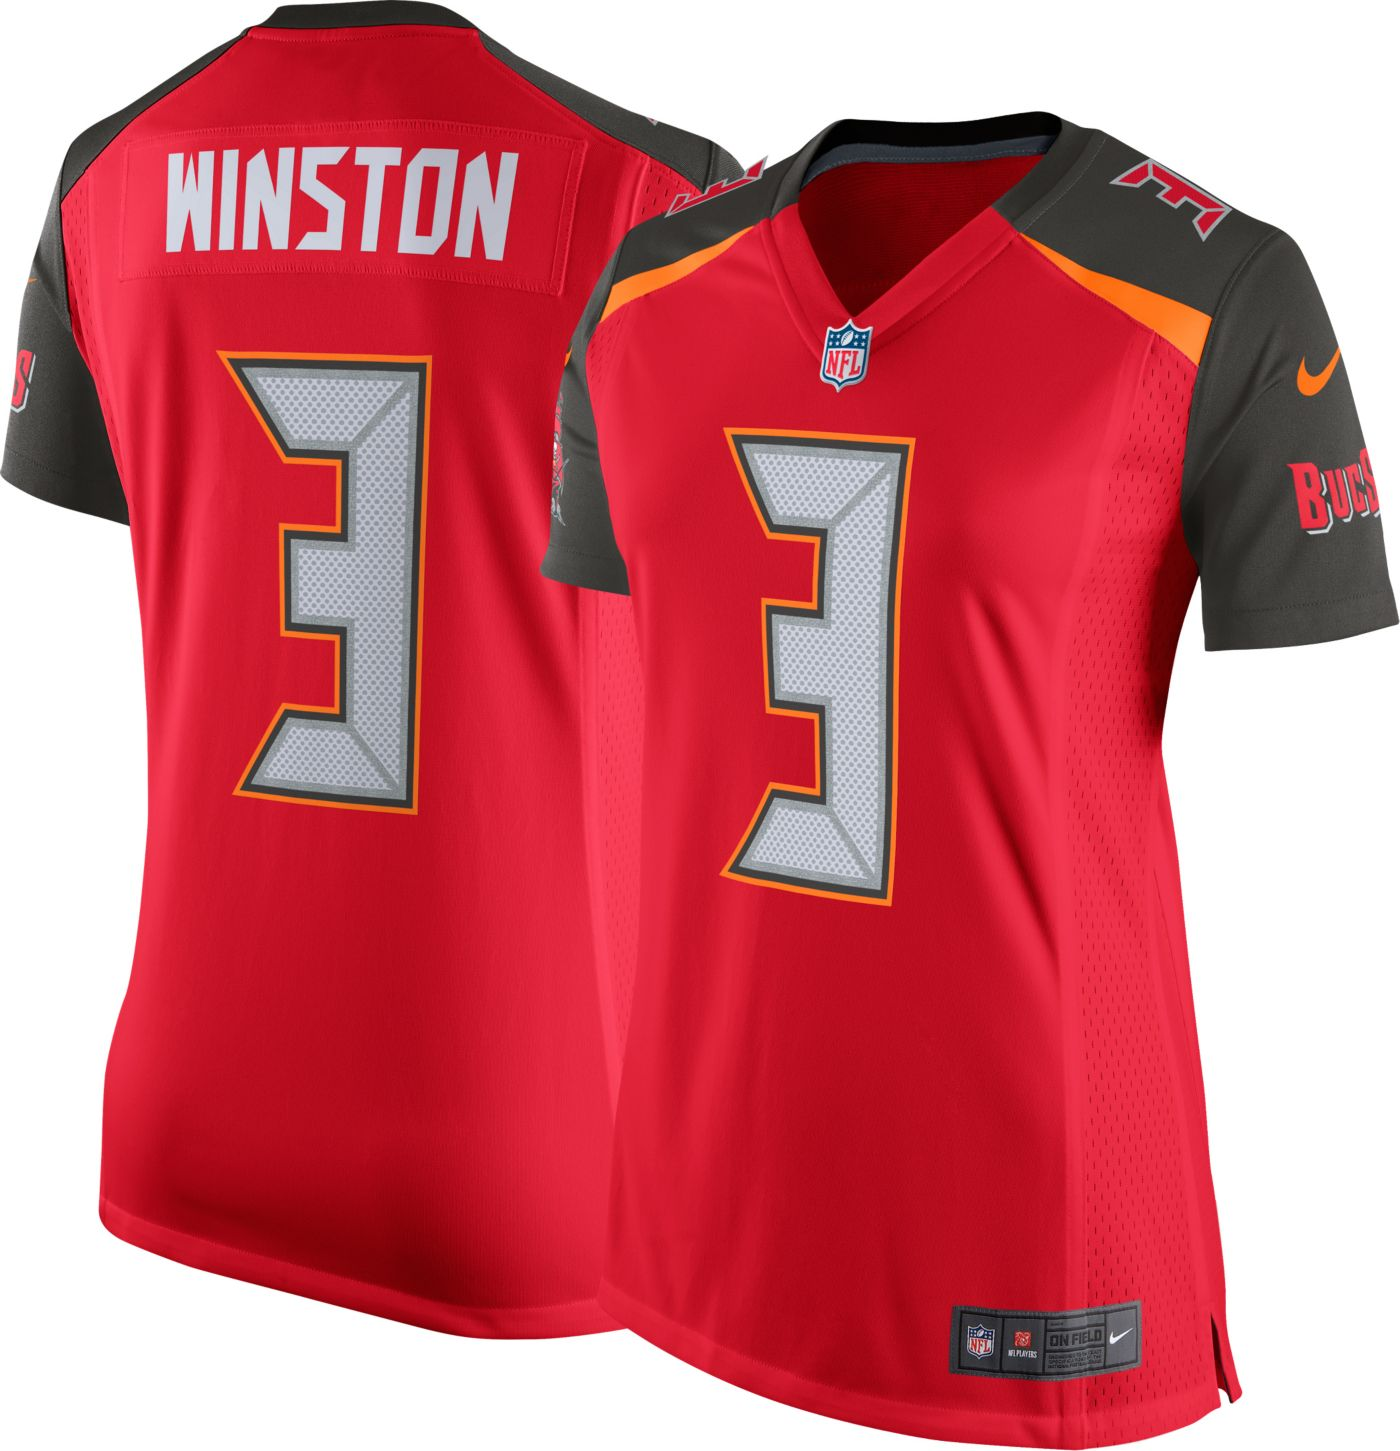 Nike Women's Home Game Jersey Tampa Bay Buccaneers Jameis Winston #3